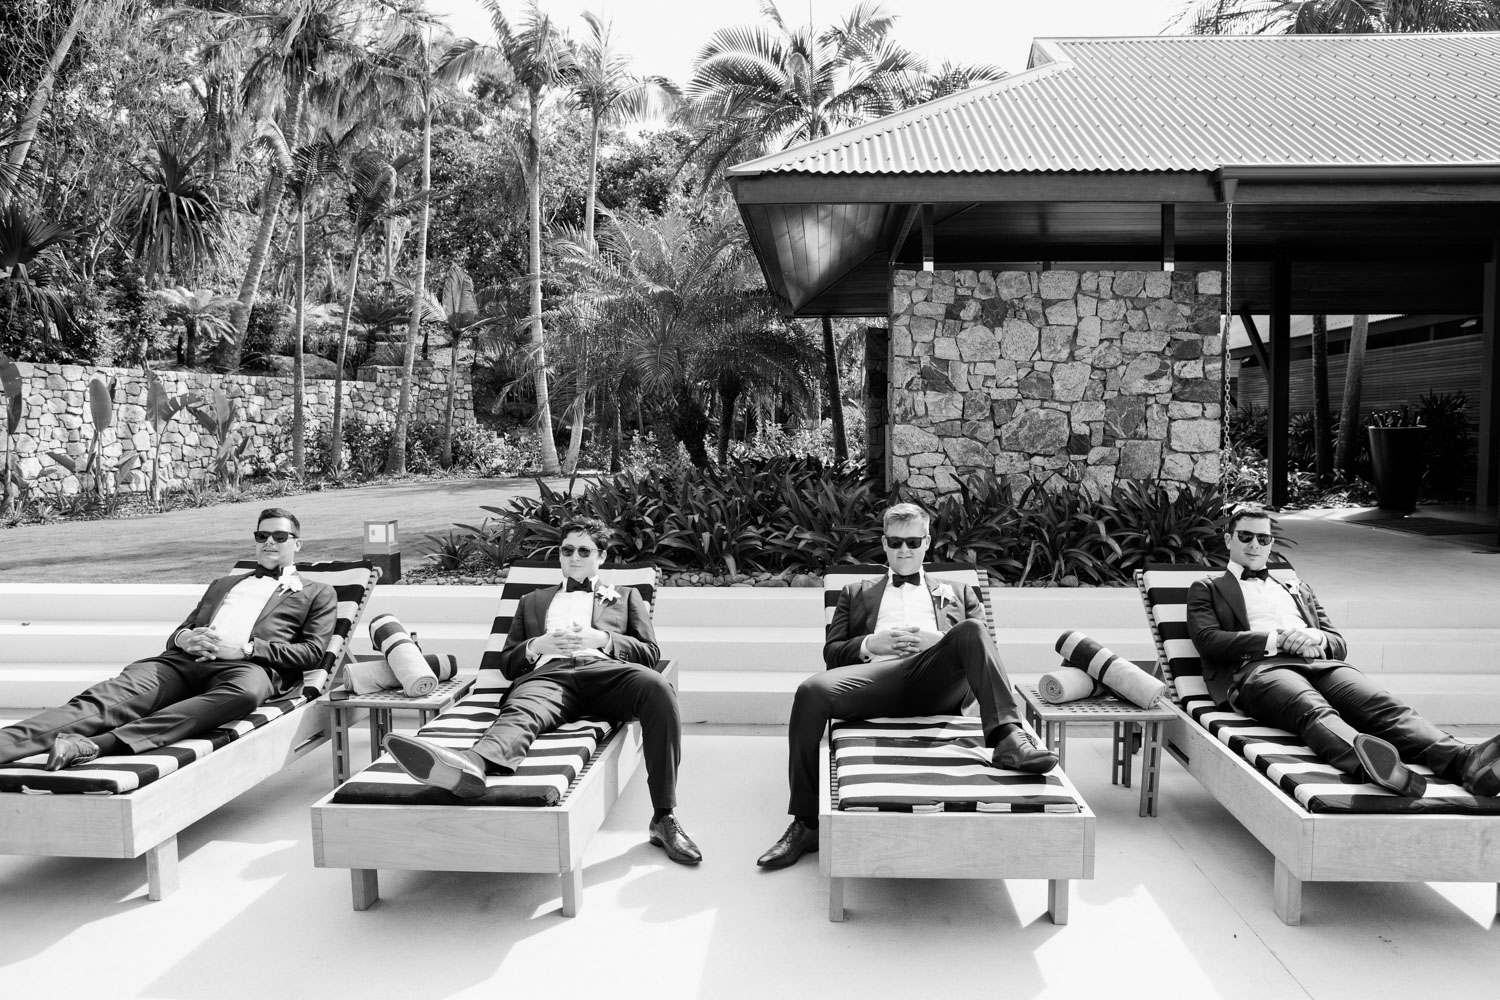 wedding-0141-qualia-boys-pool-groomsmen-bowtie-australia.jpg